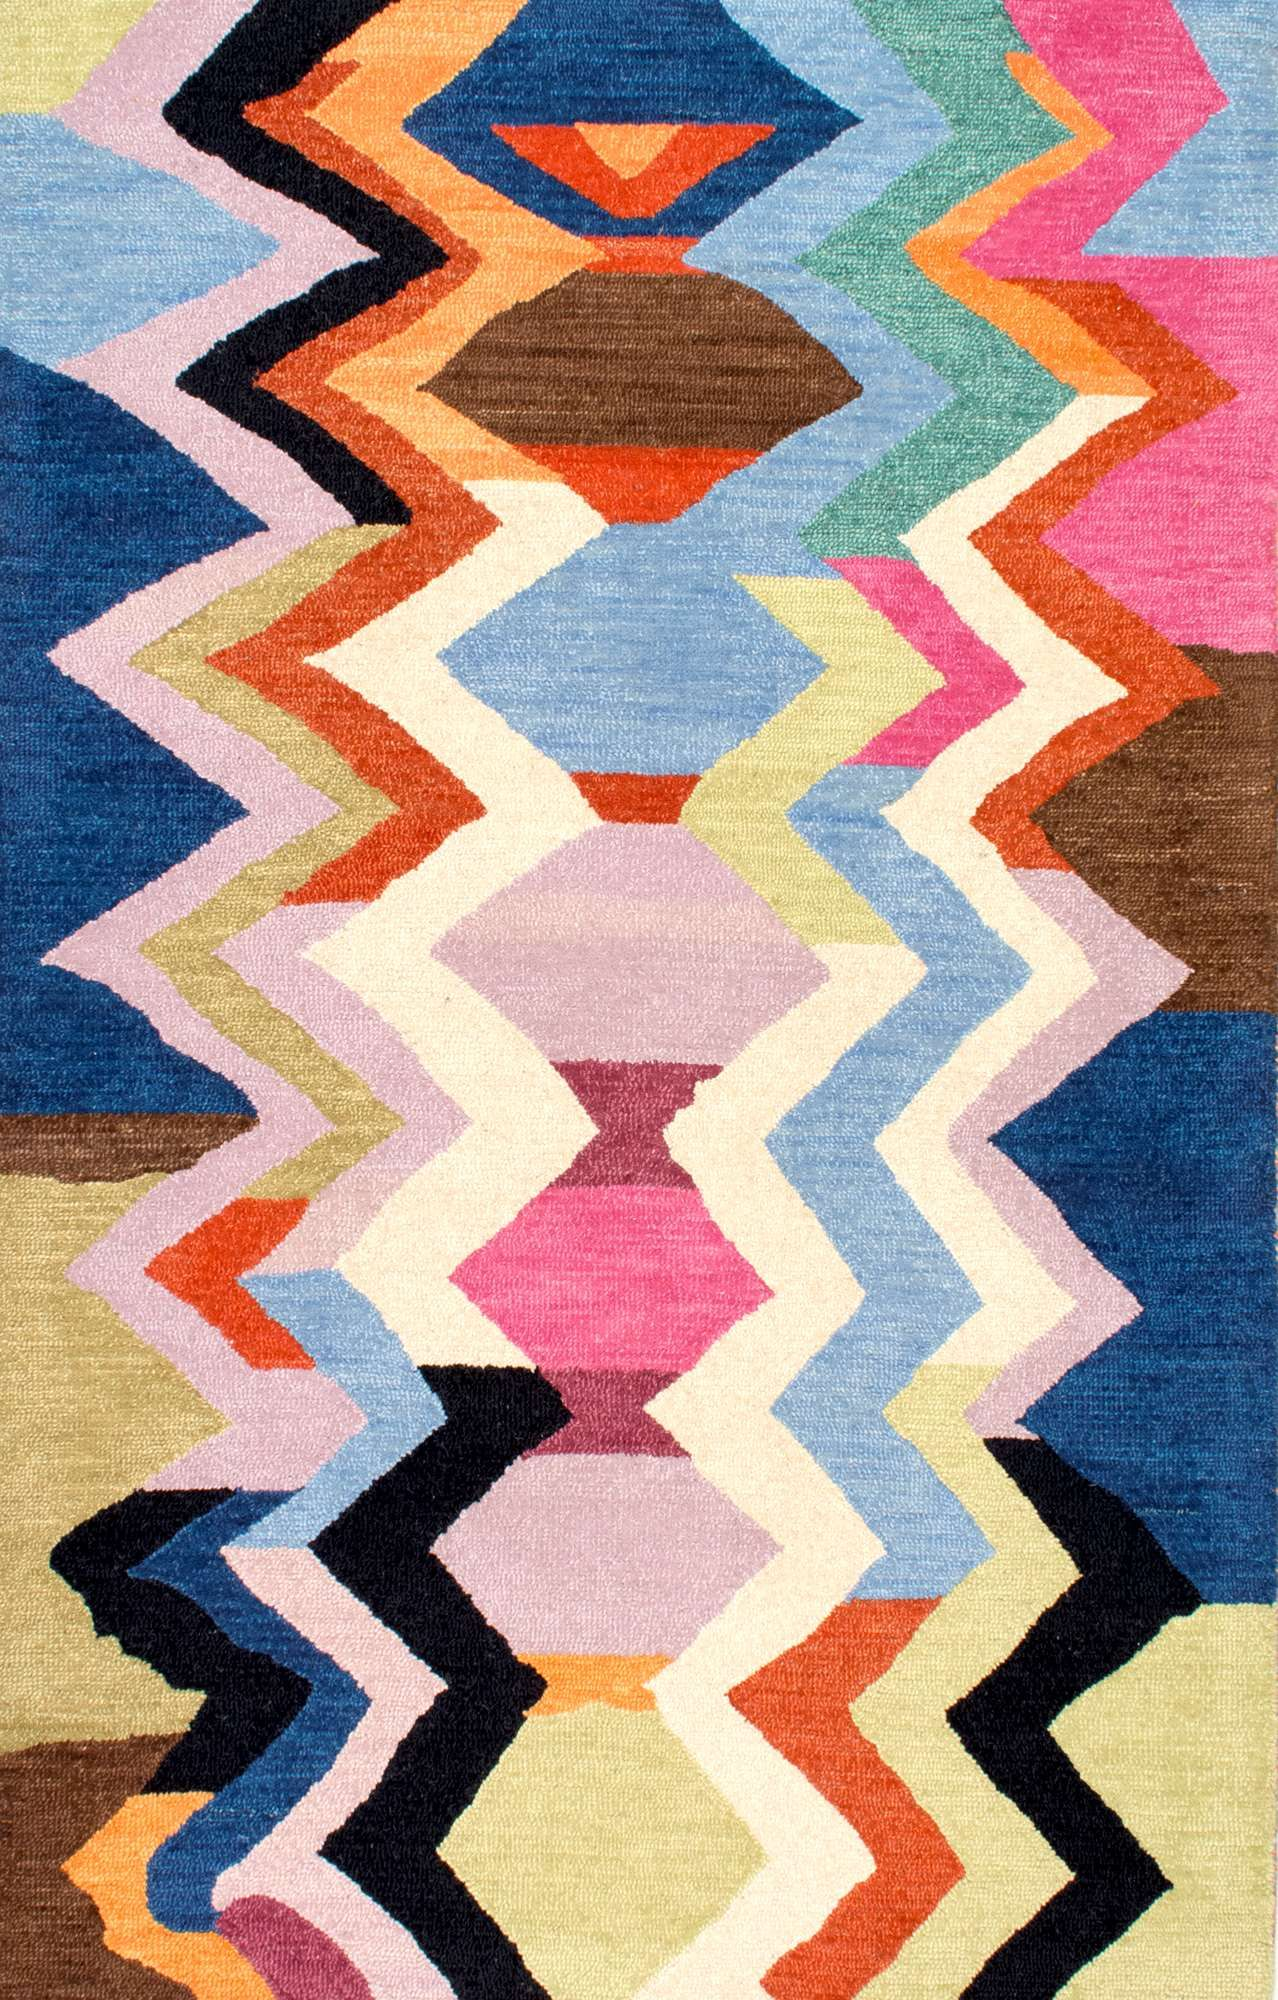 Tikal Striped Chevron Multi Rug Hand Tufted Rugs Chevron Area Rugs Wool Area Rugs